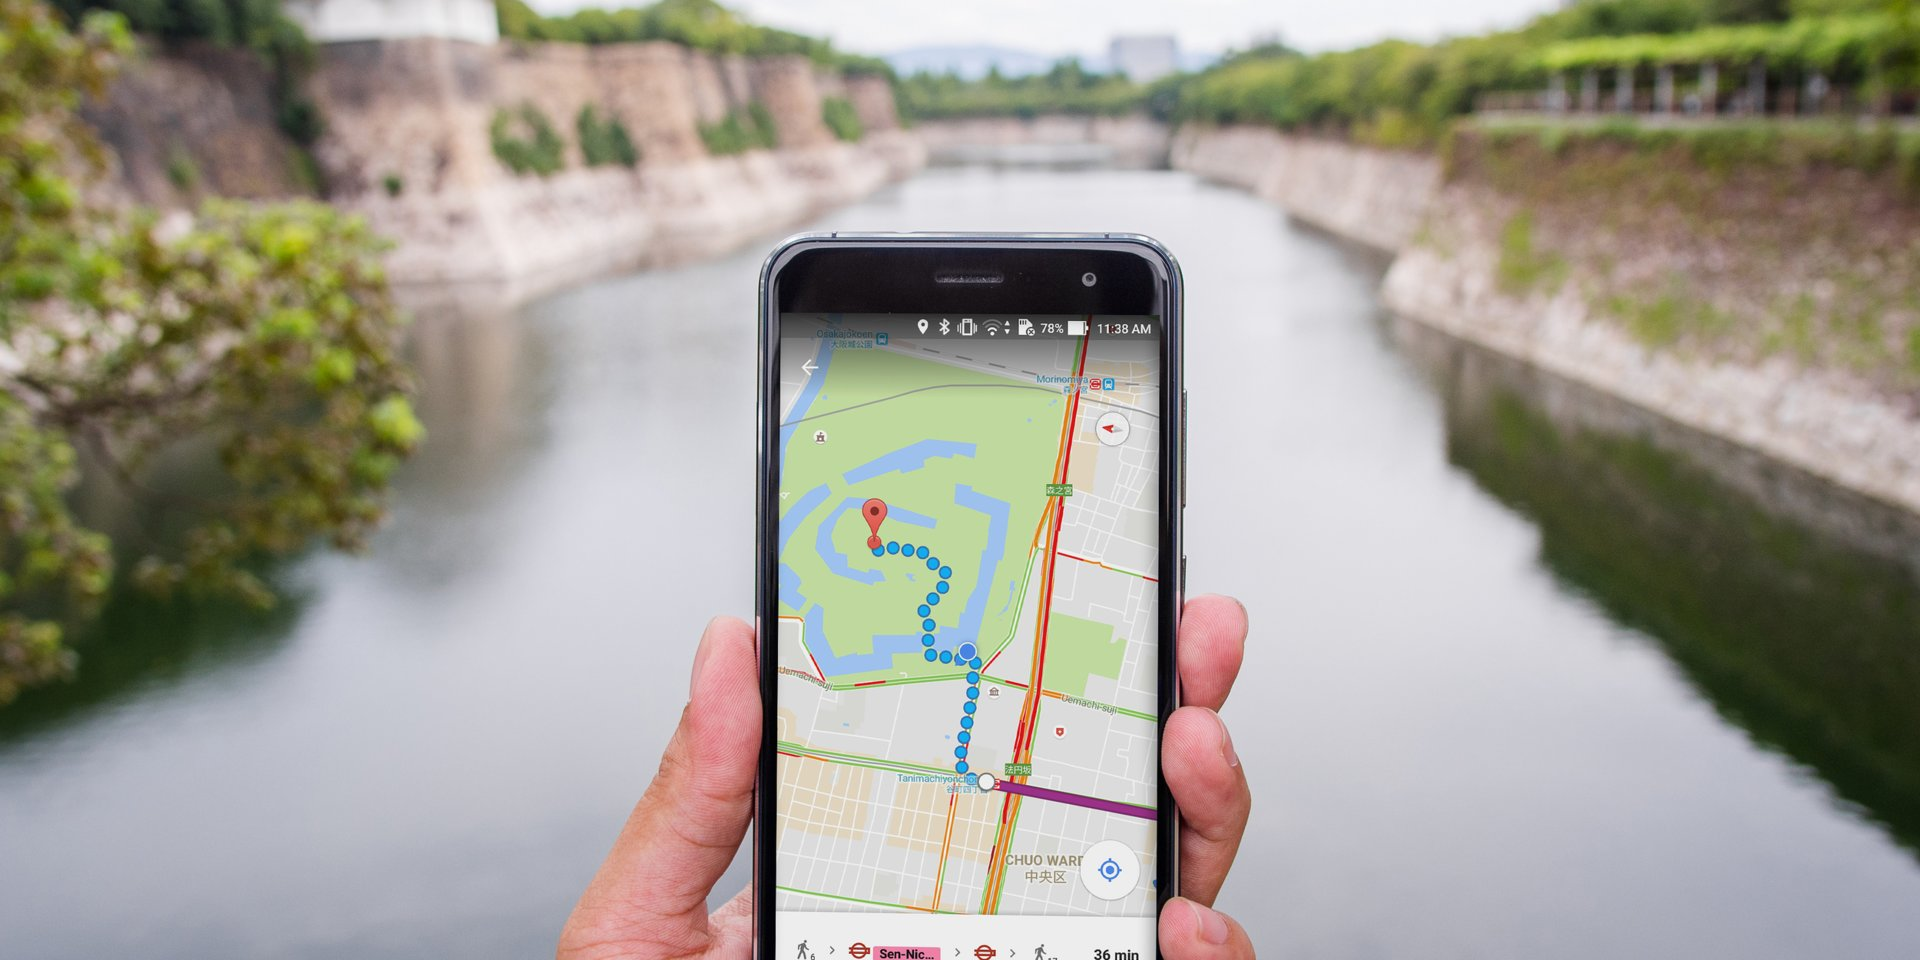 How to find coordinates on Google Maps on your phone or computer, to identify and share an exact location